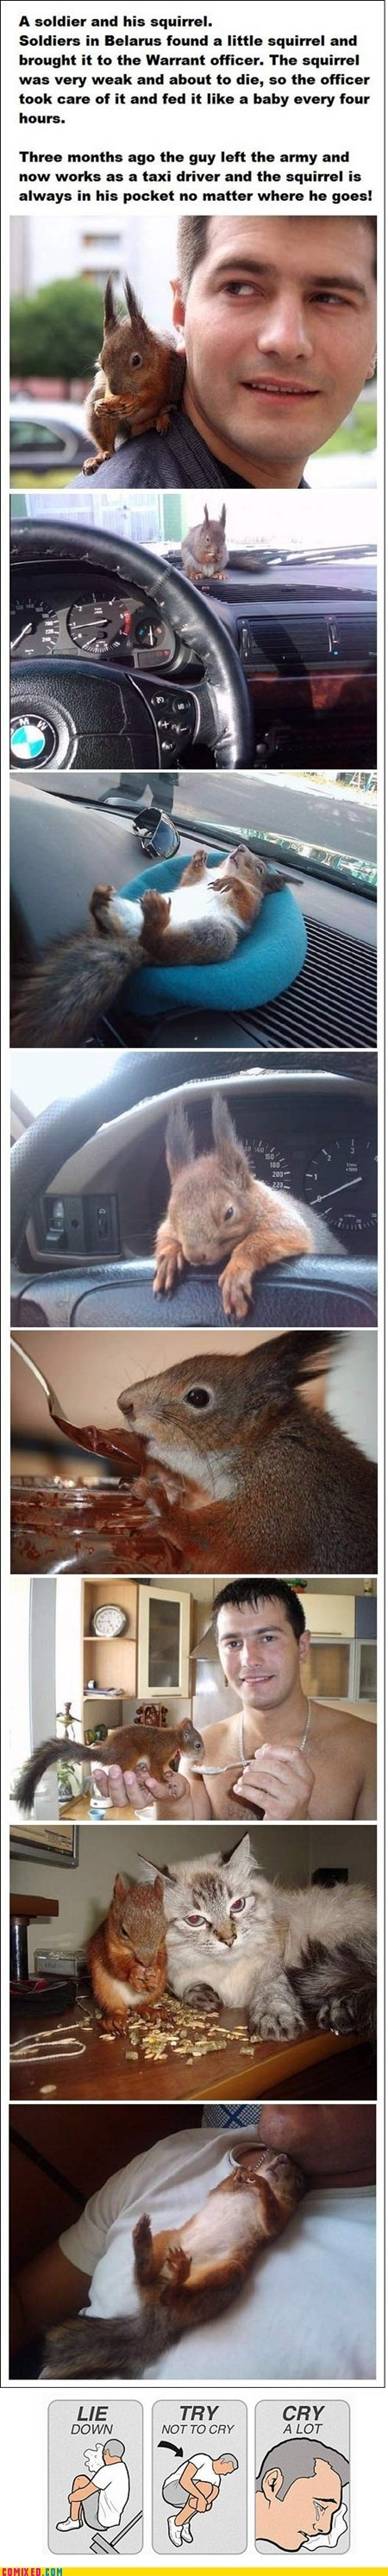 try not to cry,squirrel,cute,solider,restoring faith in humanity week